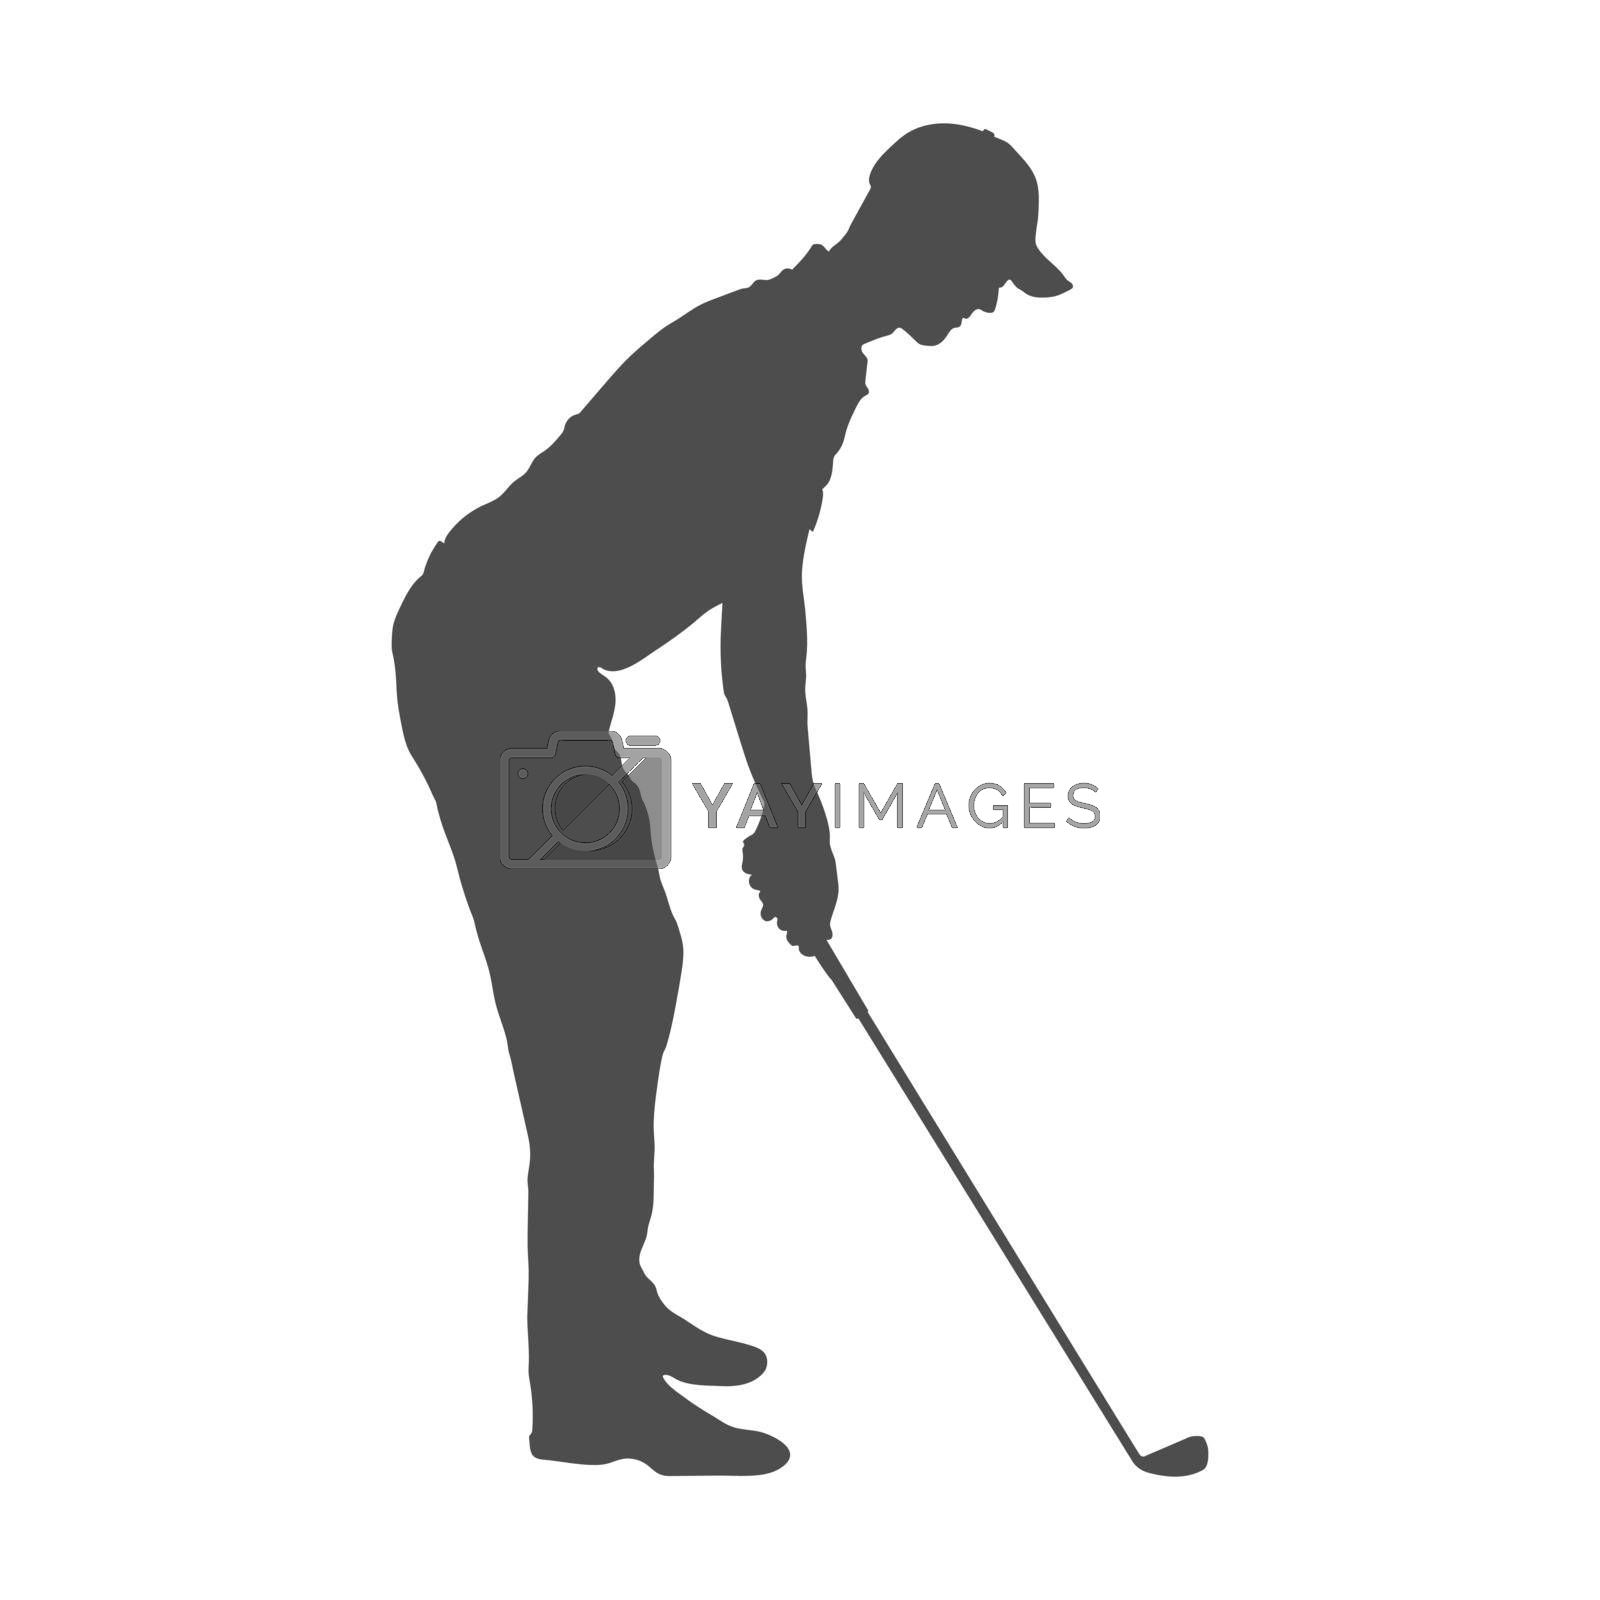 Golf. Solid silhouette of a man, a golfer. Silhouette of a golfer athlete. Flat Style